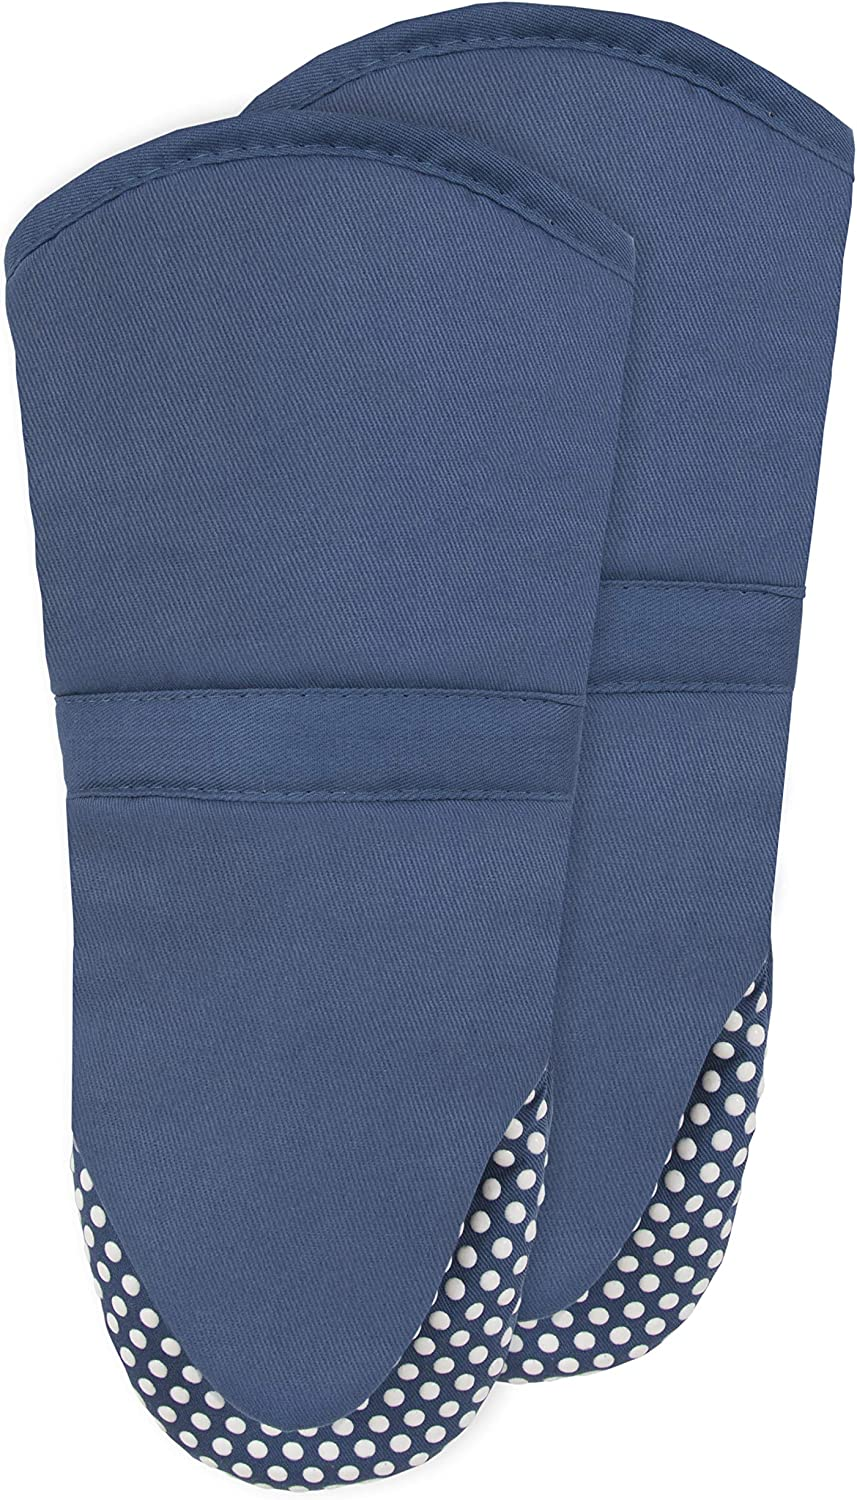 RITZ Royale 051224 Silicone Oven Mitt, 2-Pack, Federal Blue